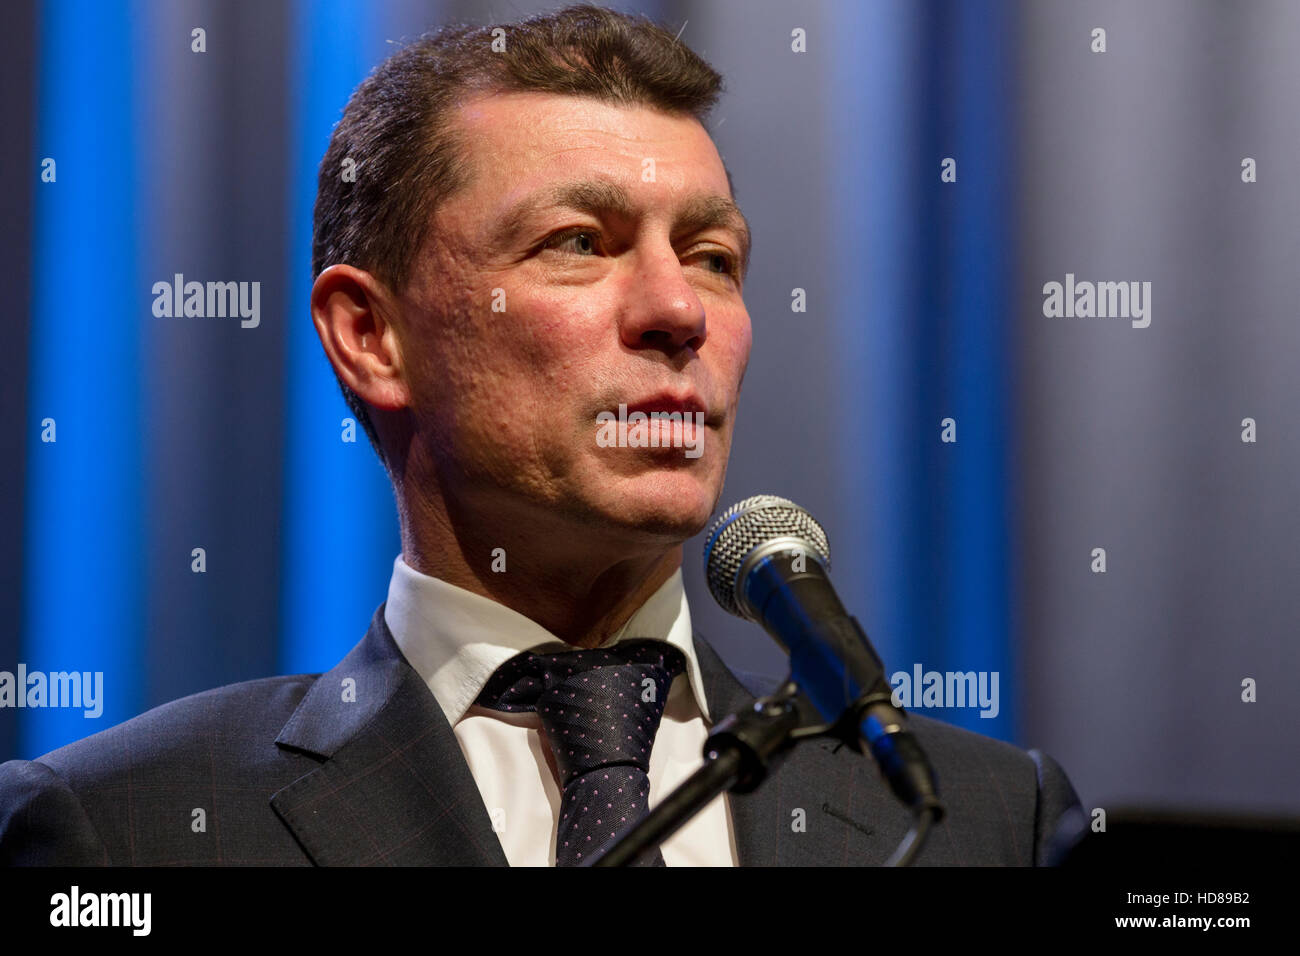 Russian Minister of Labor and Social Security Maxim Topilin at the press conference in Moscow, Russia - Stock Image